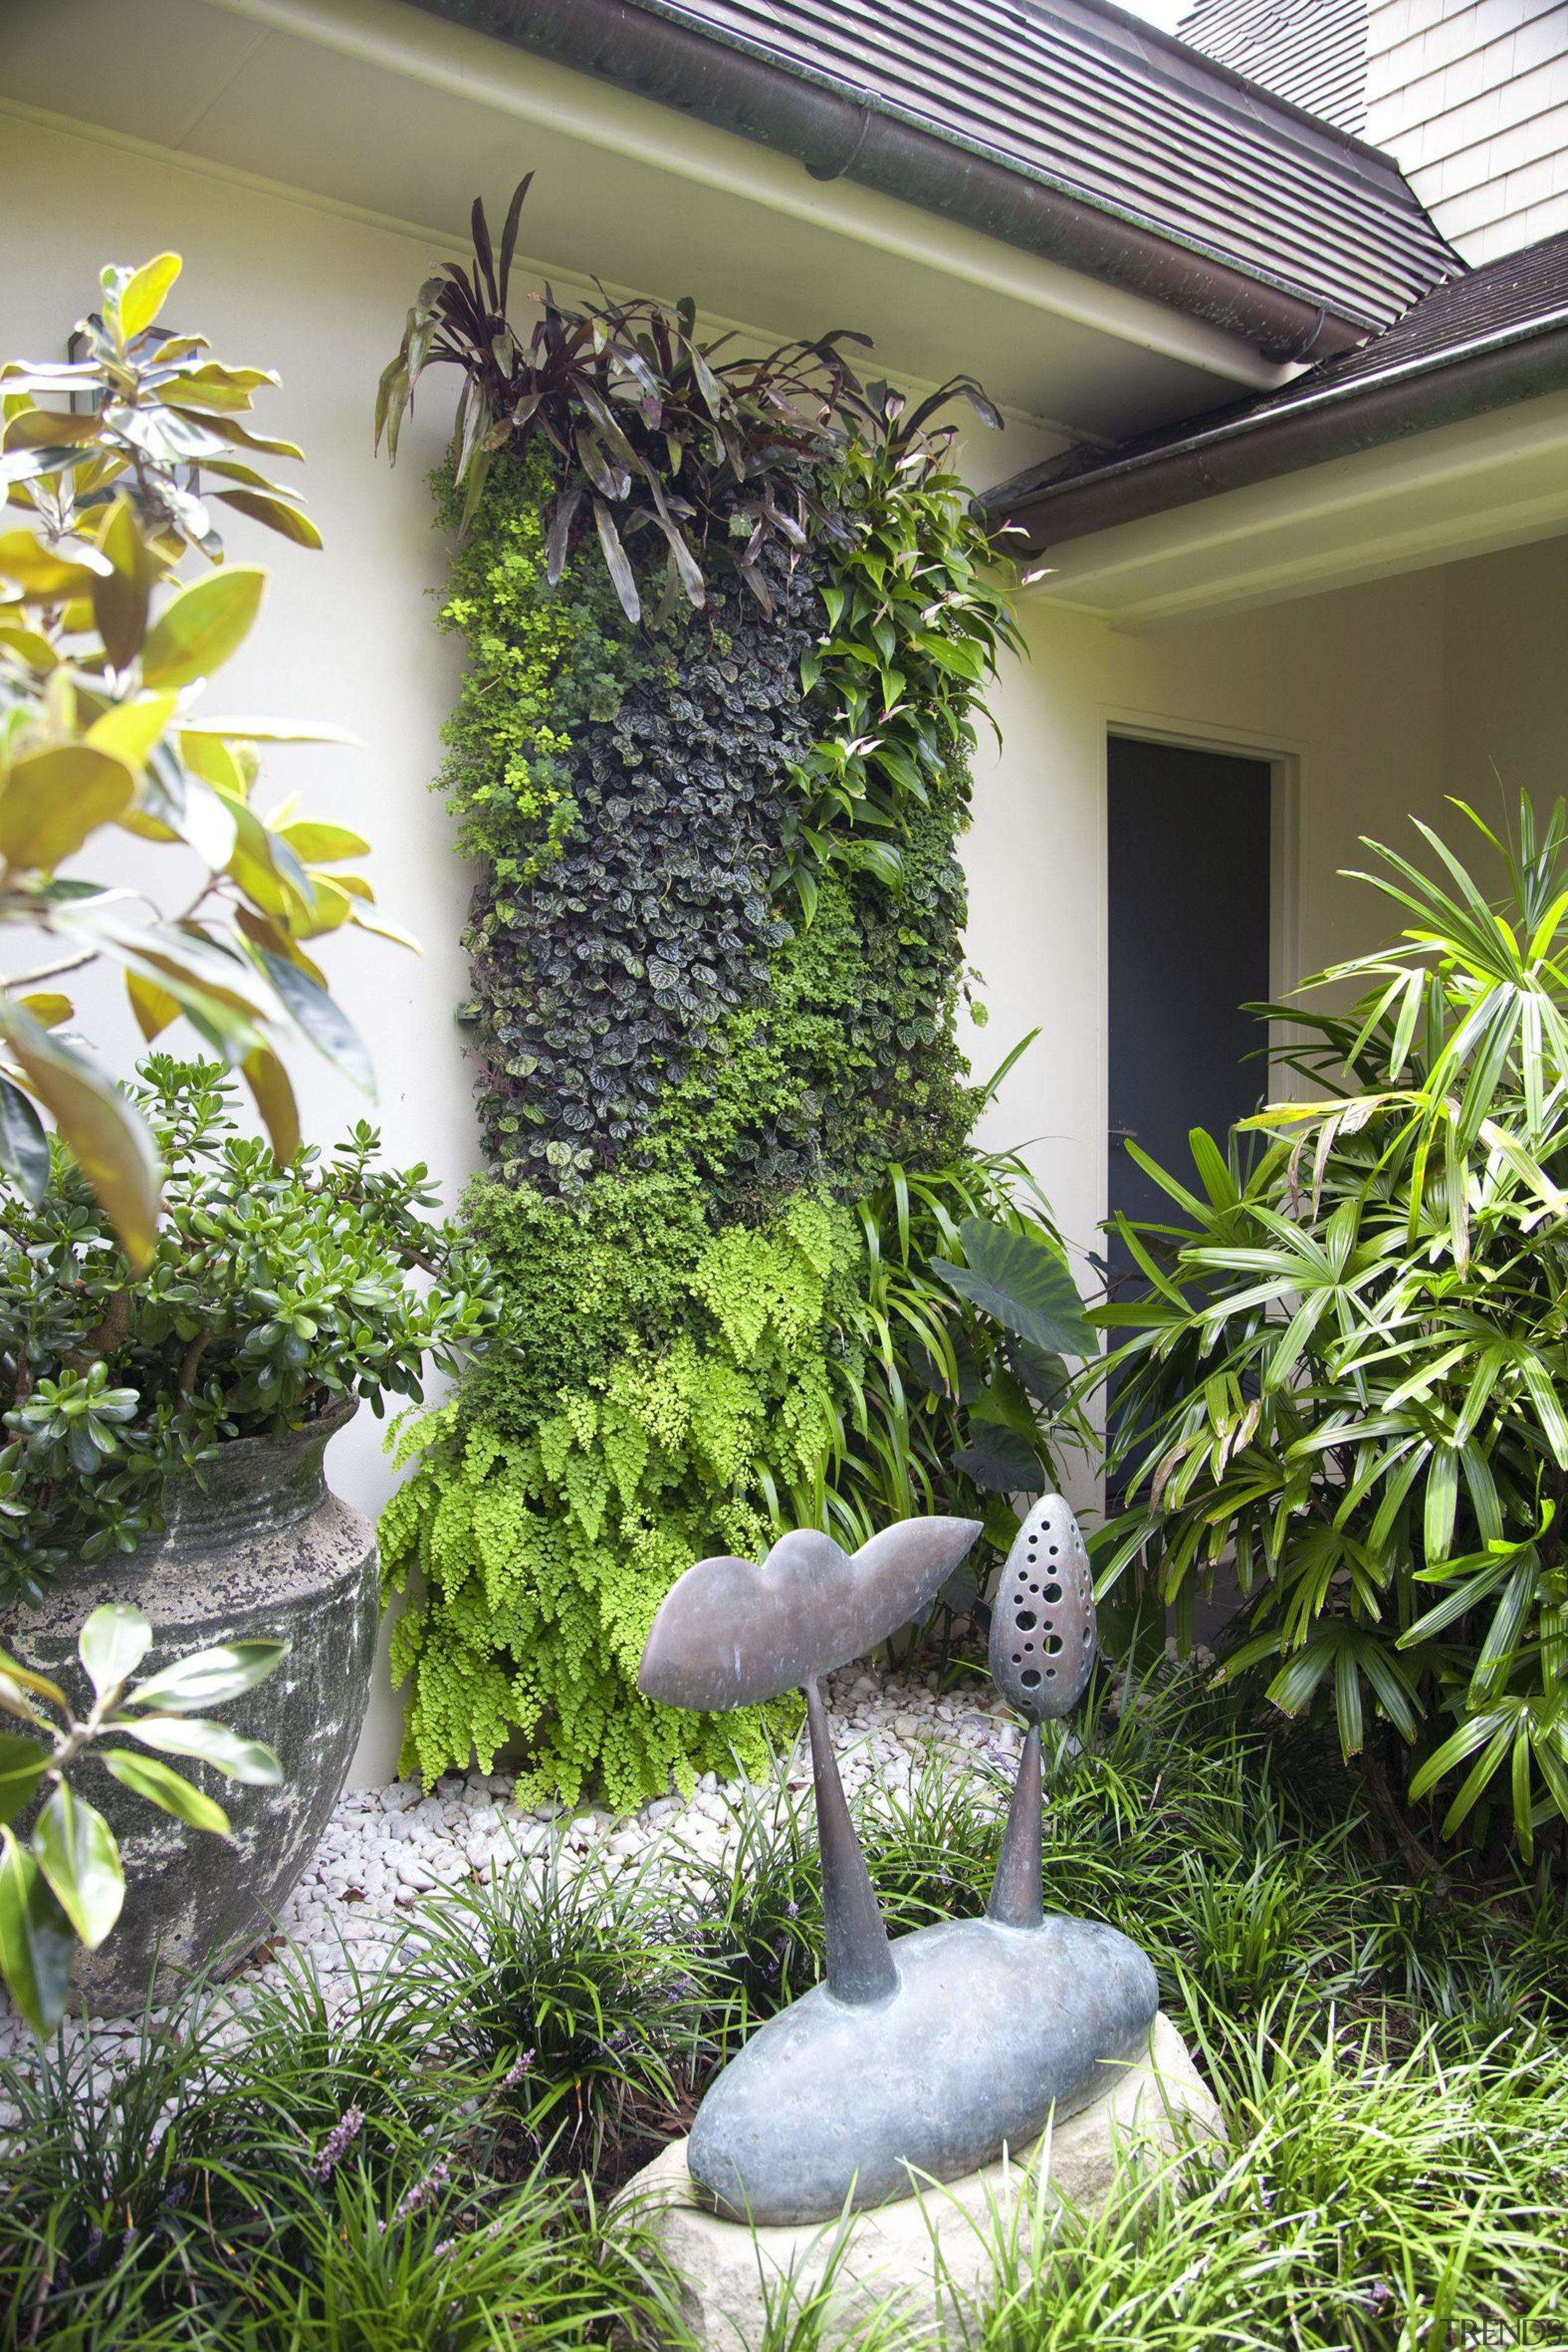 What you need to know about greening your architecture, botanical garden, botany, flowerpot, garden, grass, house, houseplant, landscaping, plant, real estate, shrub, tree, yard, brown